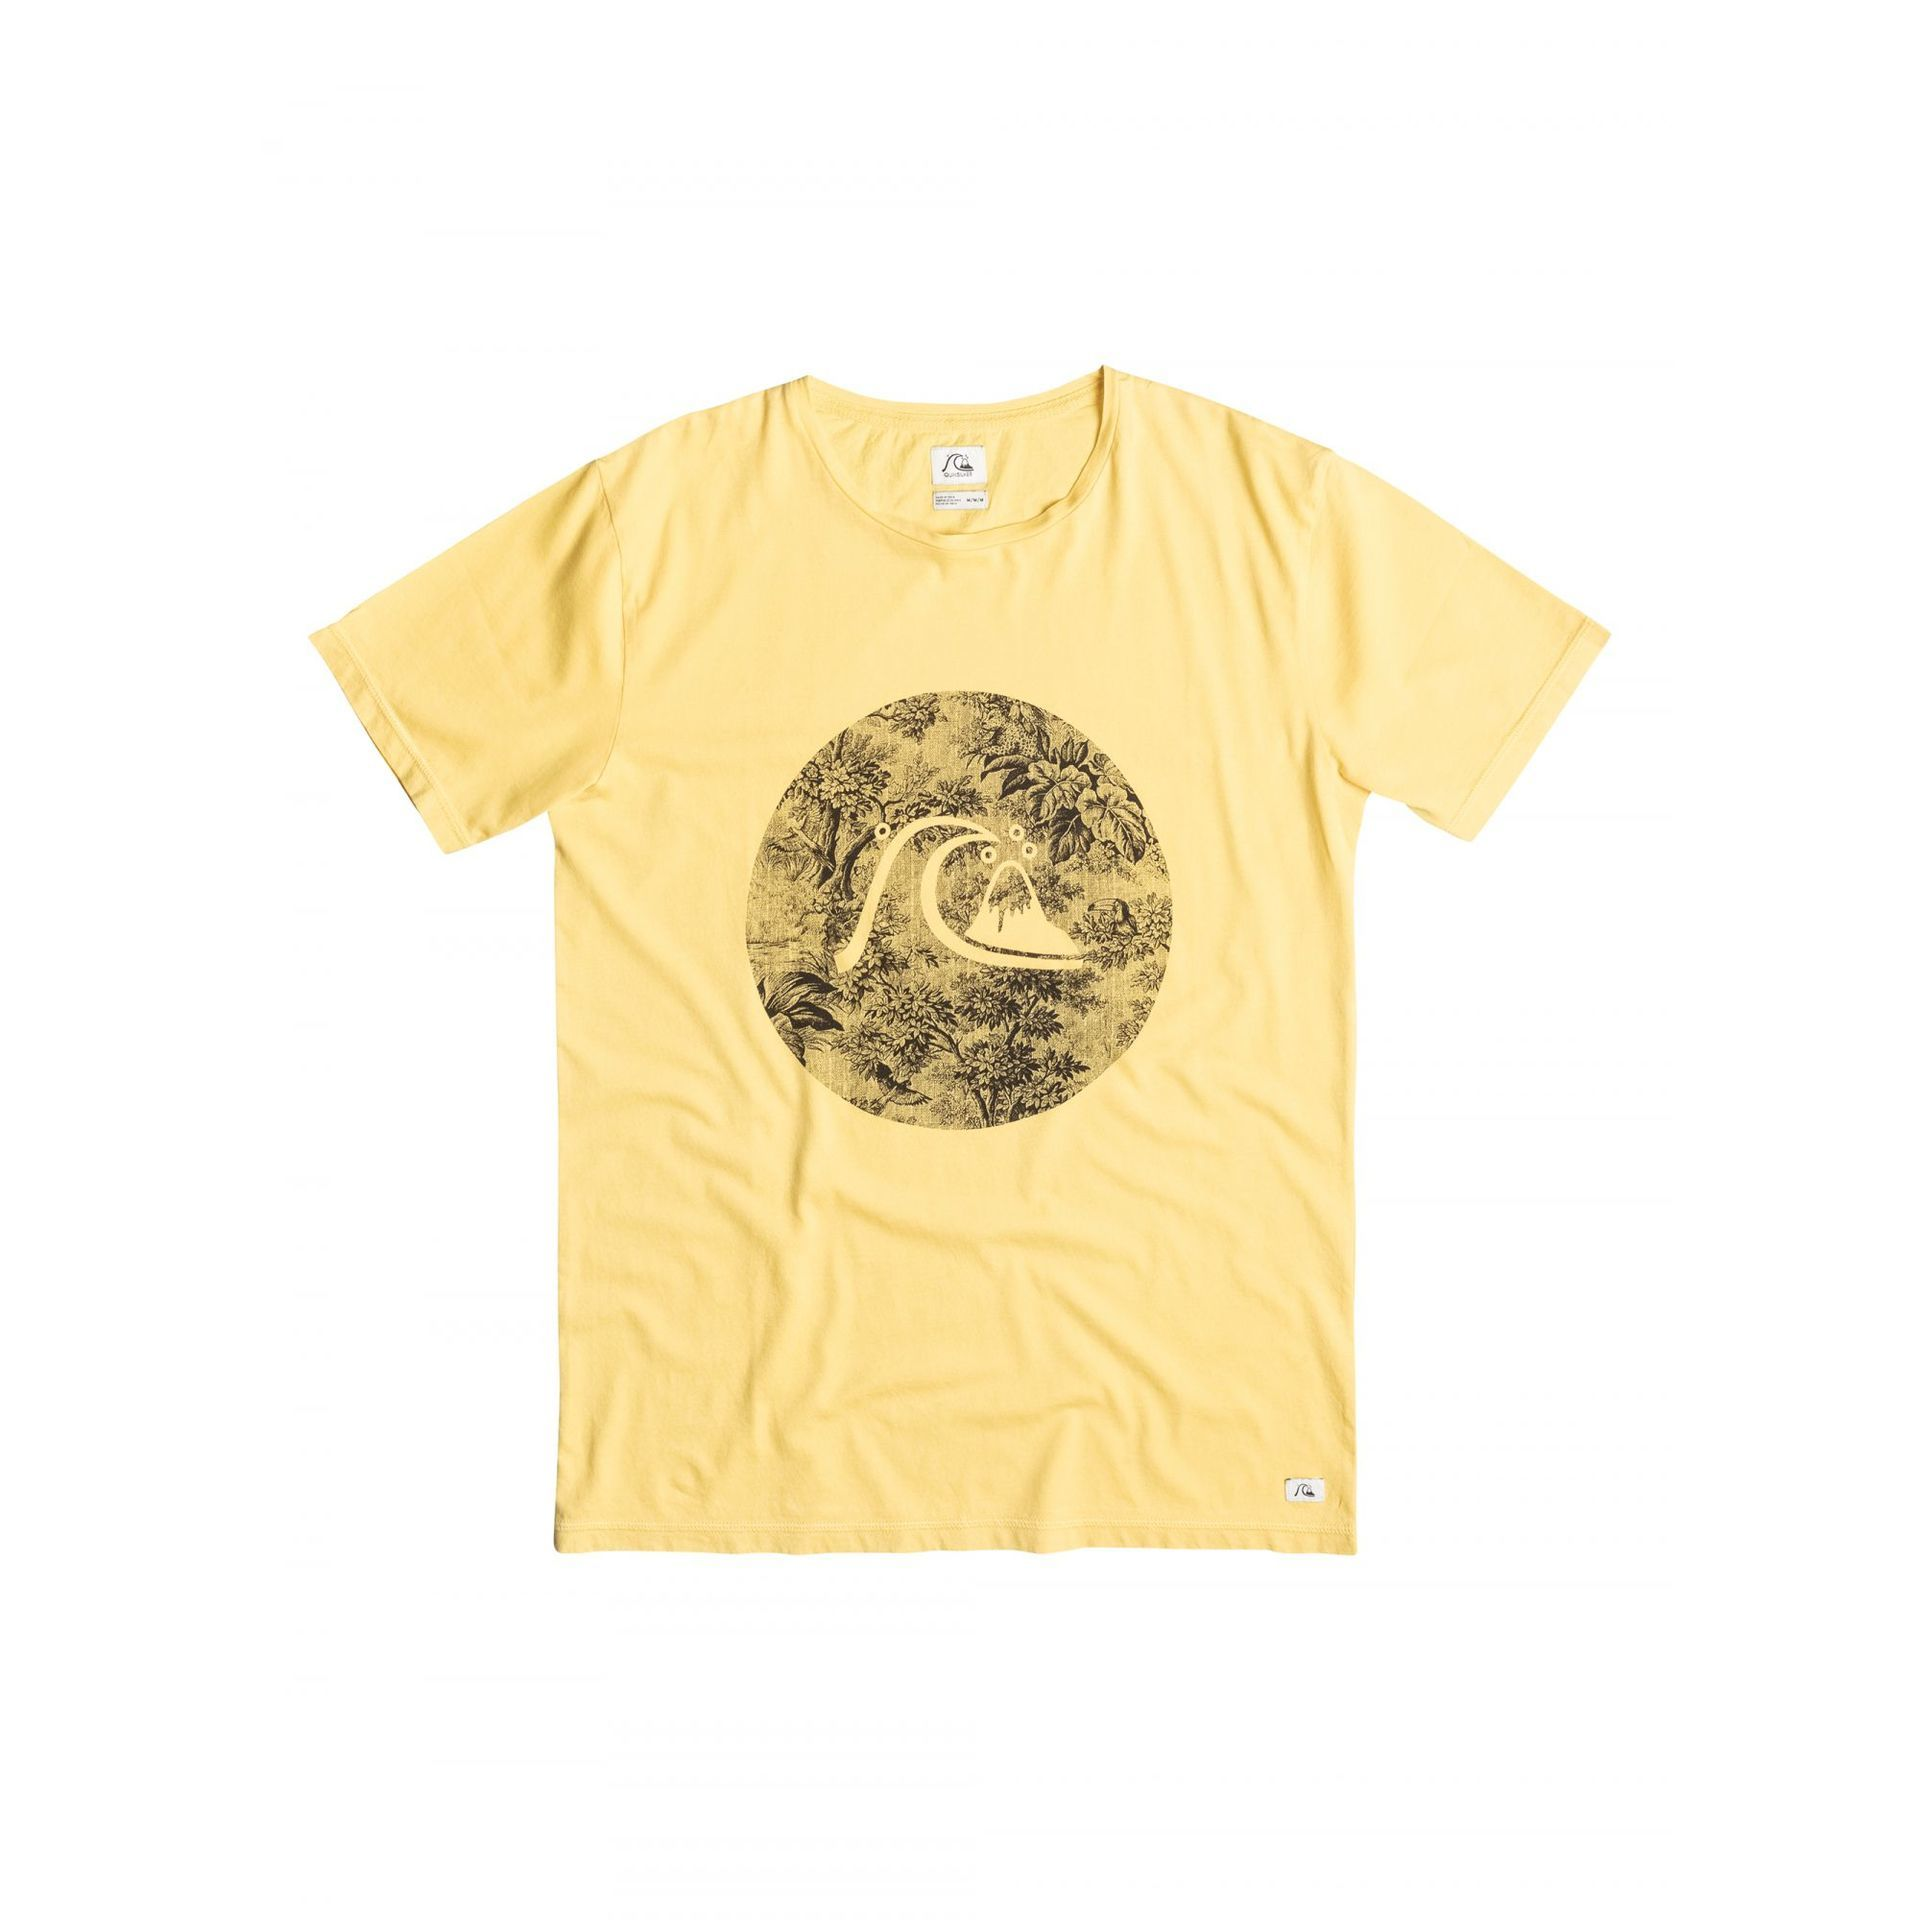 KOSZULKA QUIKSILVER #GARMENT DYED SUNSET TUNELS YZF0